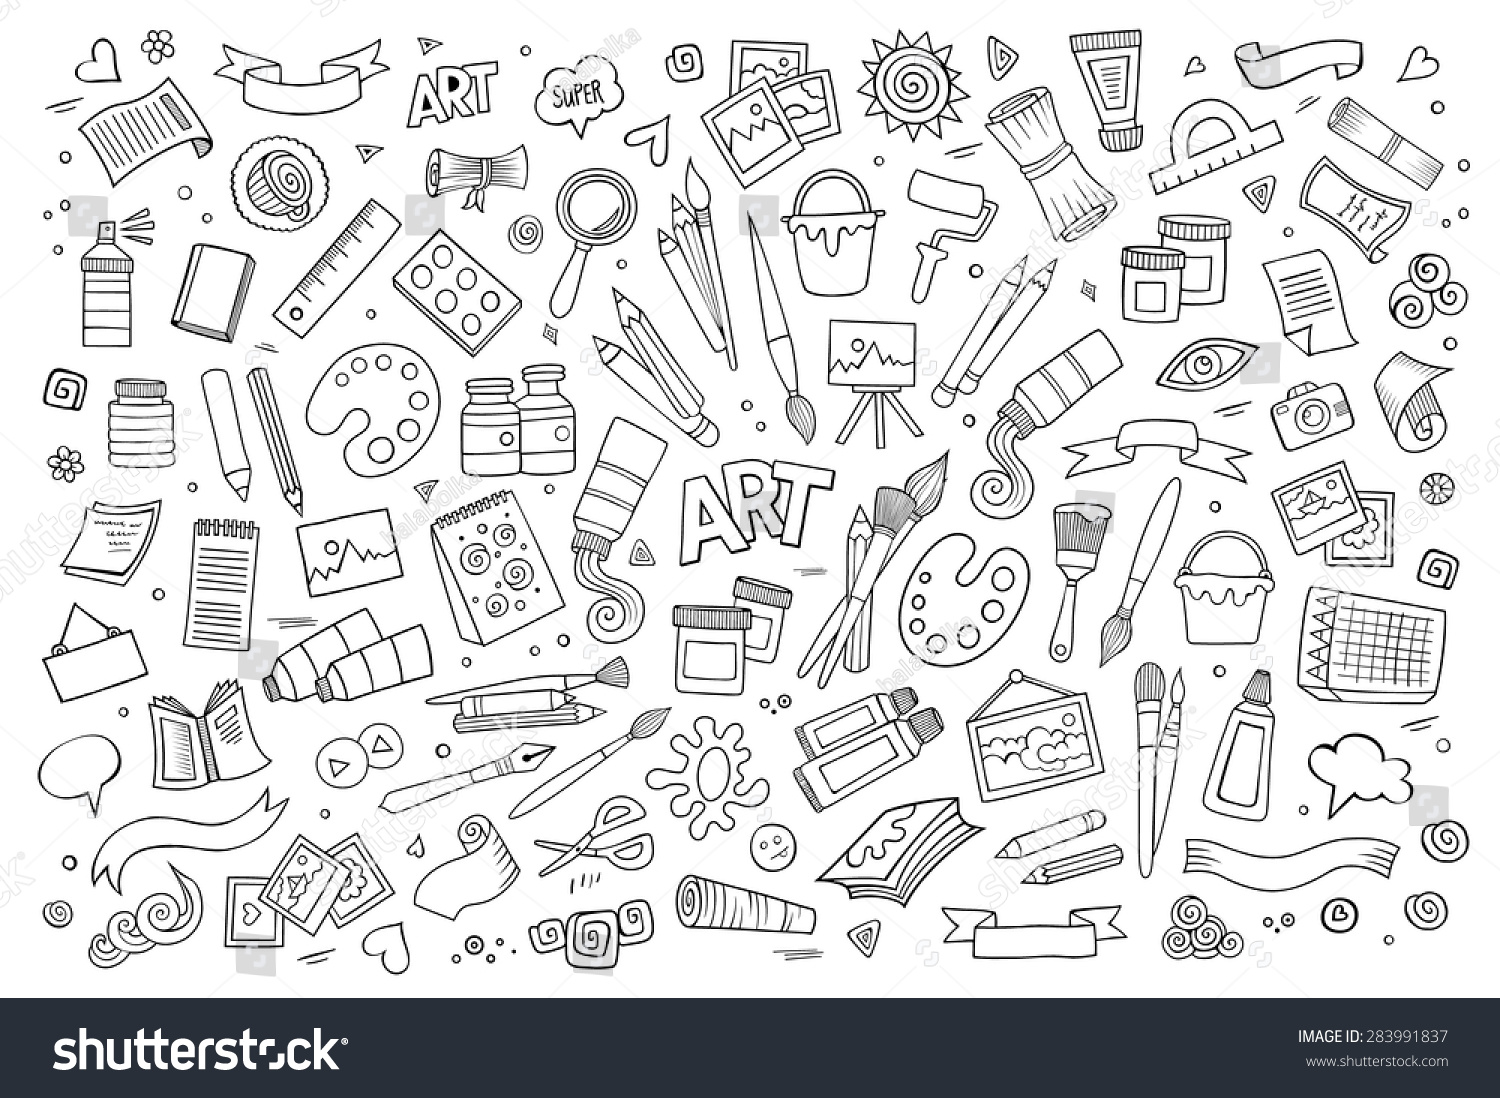 Notebook And Pen Sketch Stock Vector Art More Images Of: Art Craft Hand Drawn Vector Symbols Stock Vector 283991837